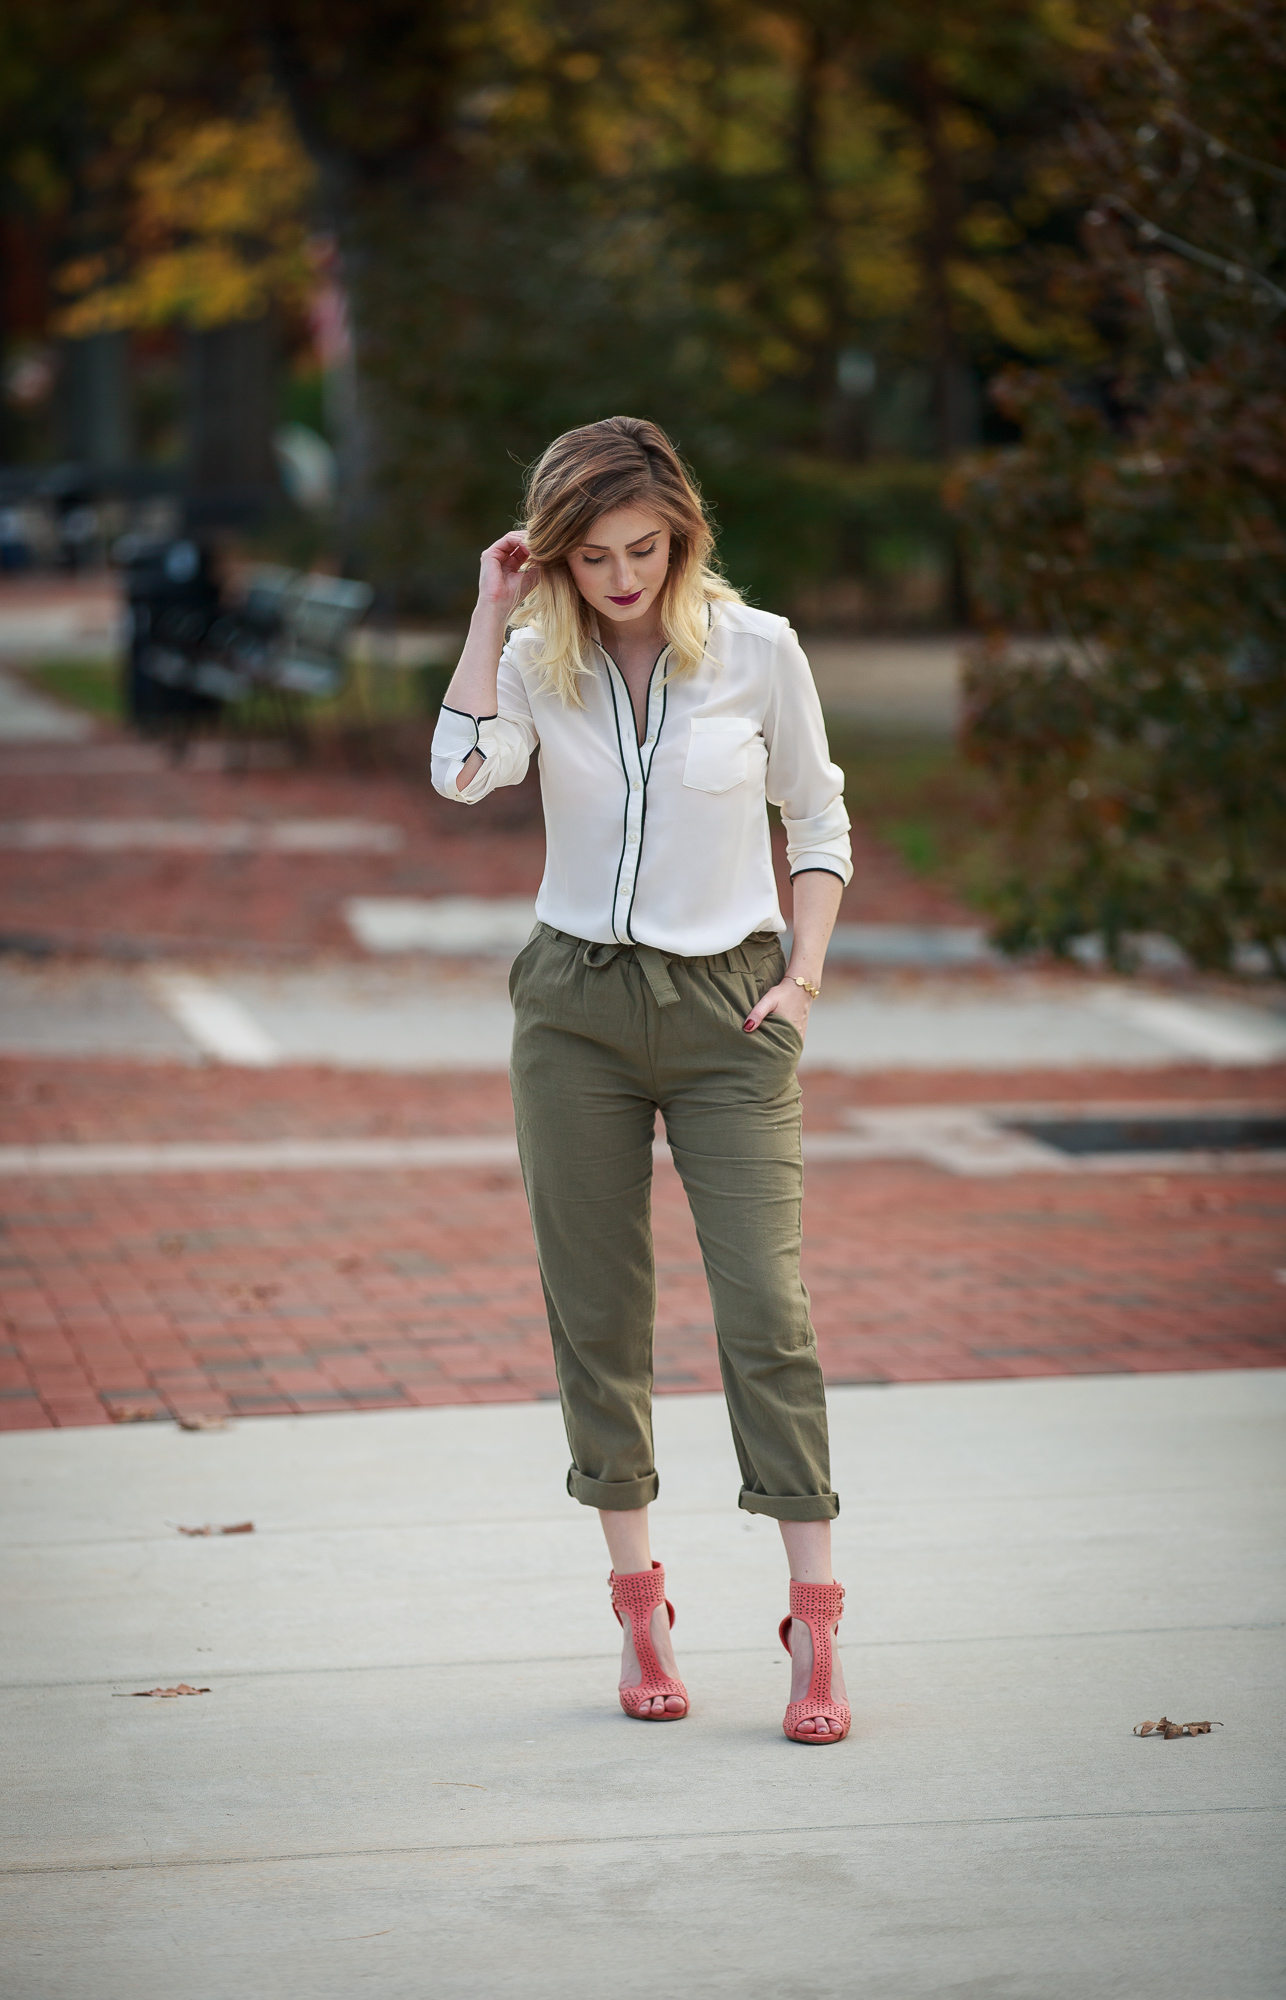 How to Dress Postpartum. Some quick tips and examples on dressing the postpartum body. Flattering Postpartum styling tricks to cover the stomach and diastase recti.